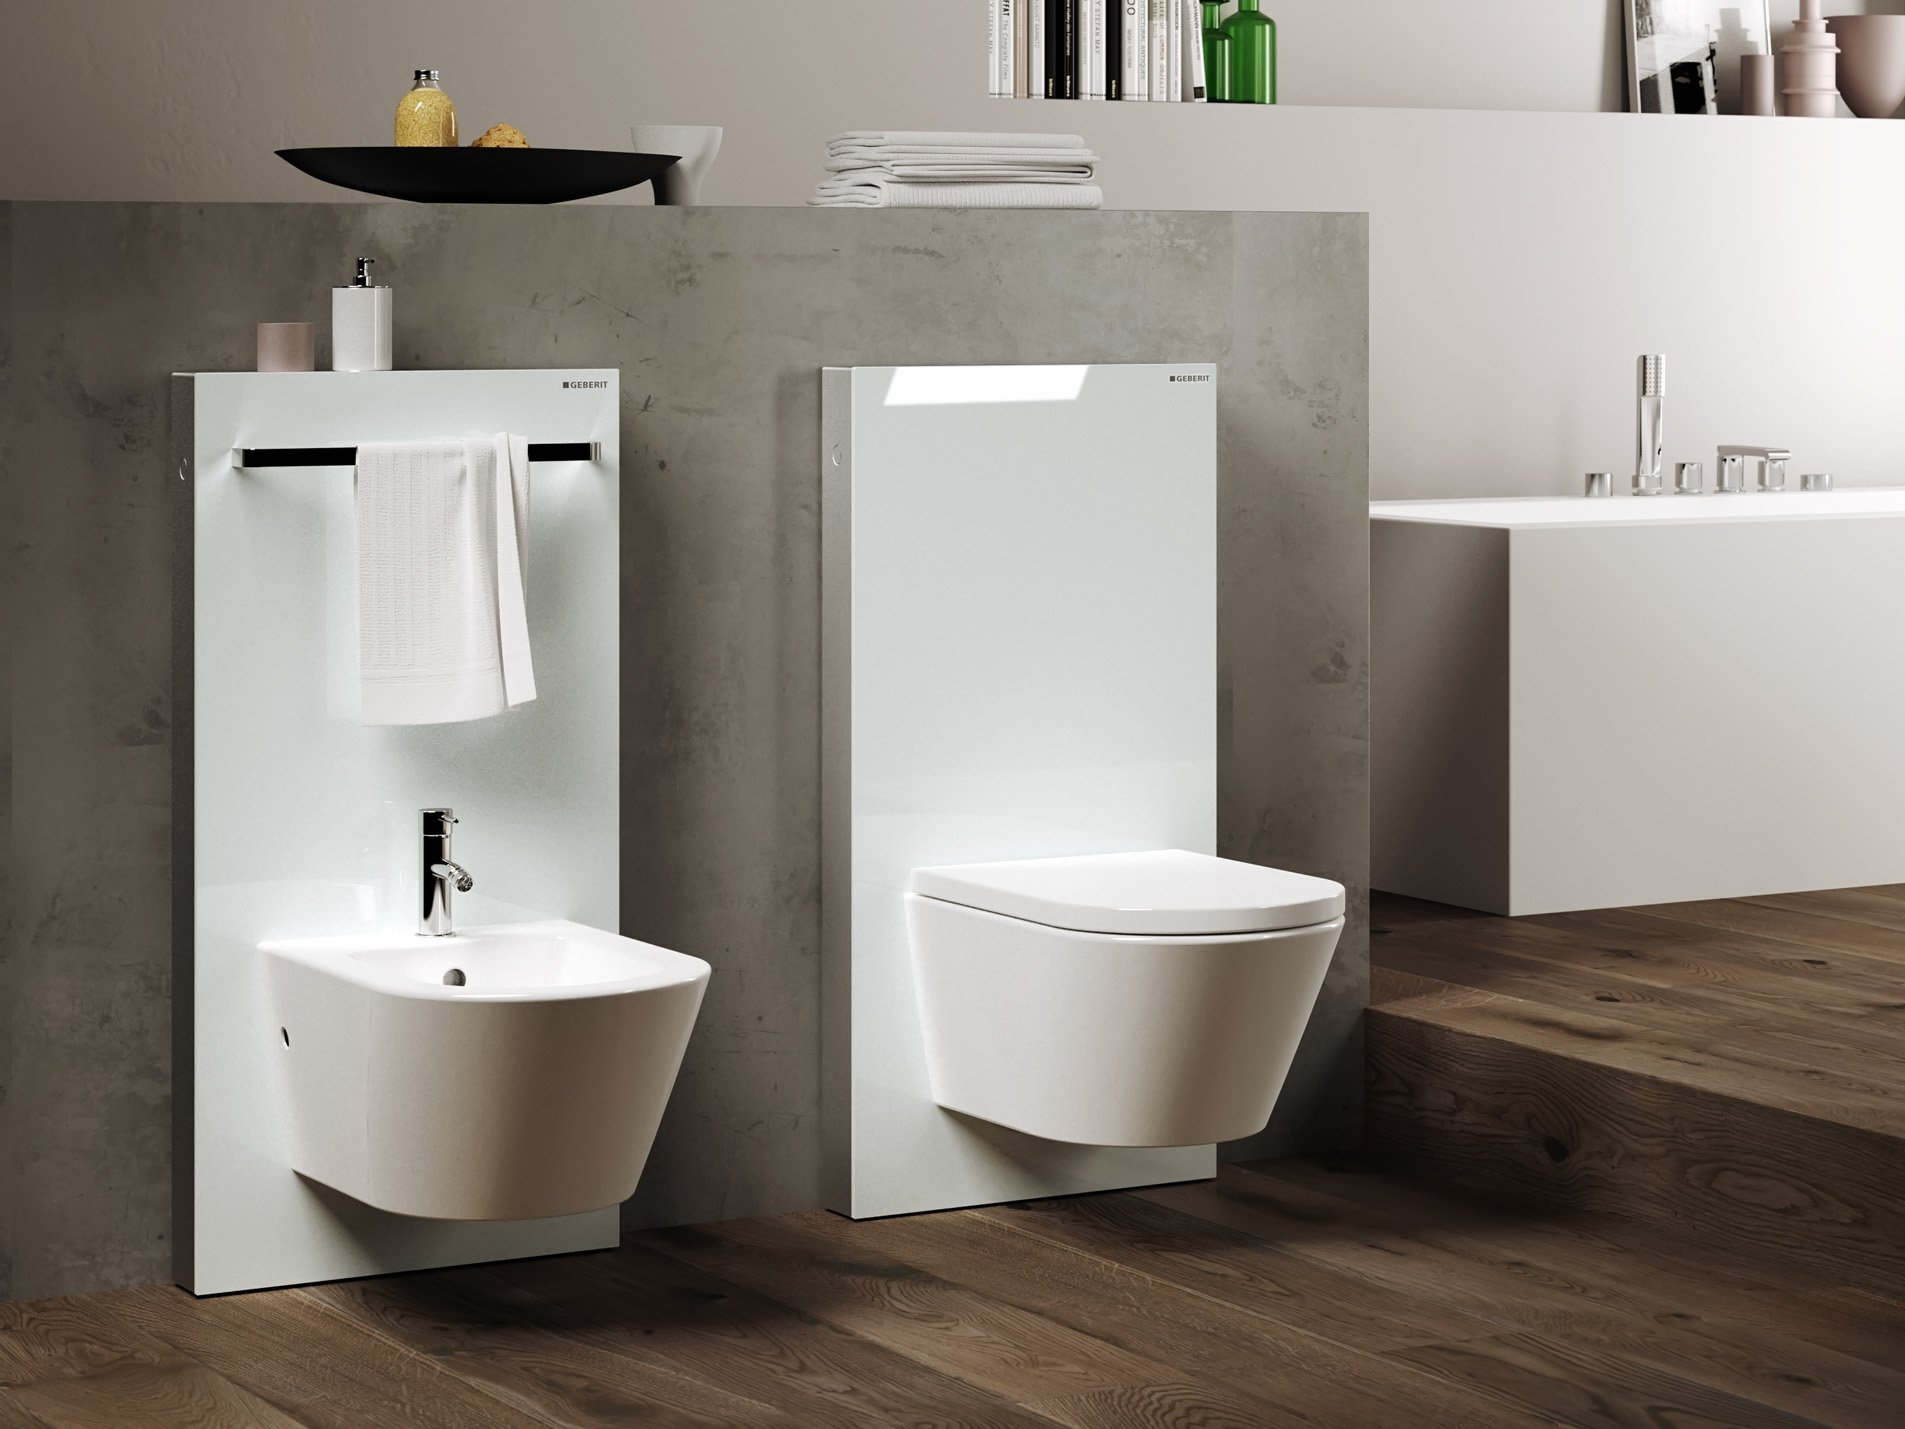 Monolith sanit rmodul f r bidet by geberit italia design for Geberit toilet system